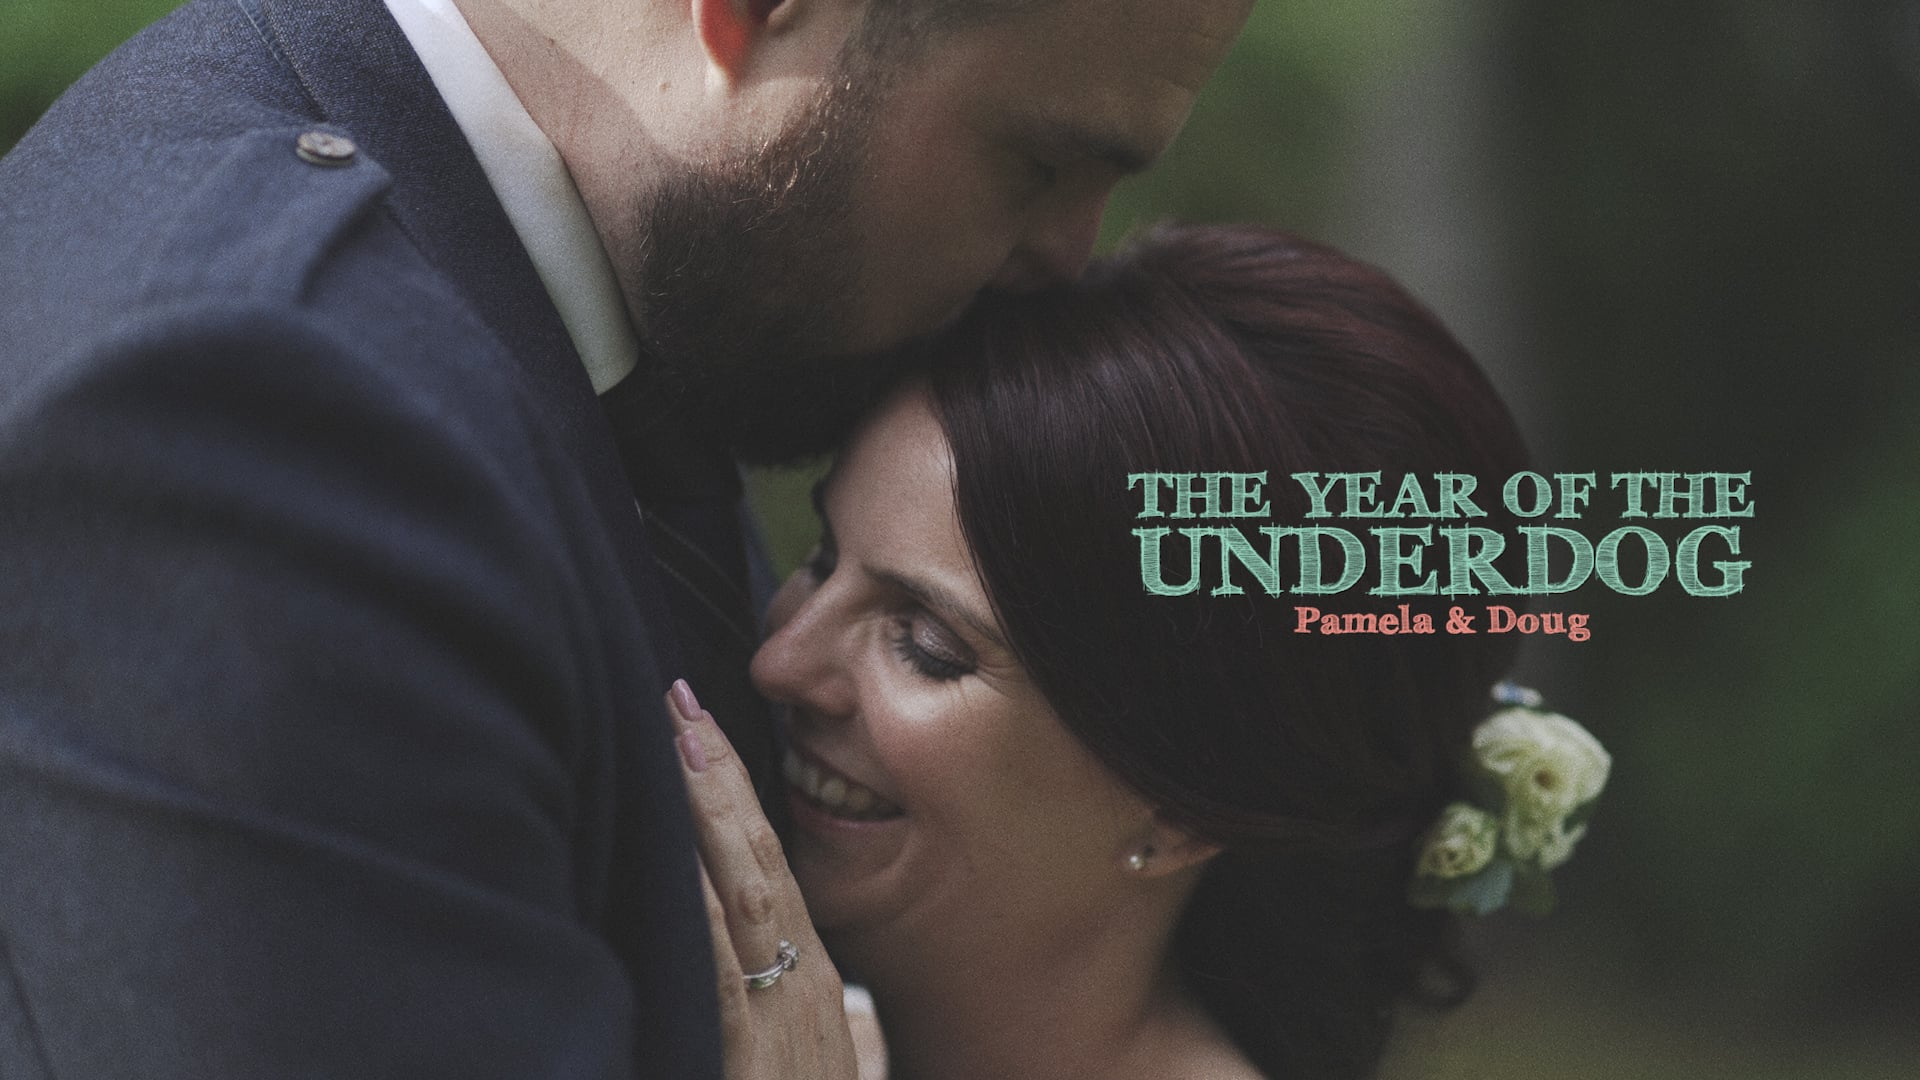 The Year of the Underdog by Pamela and Doug